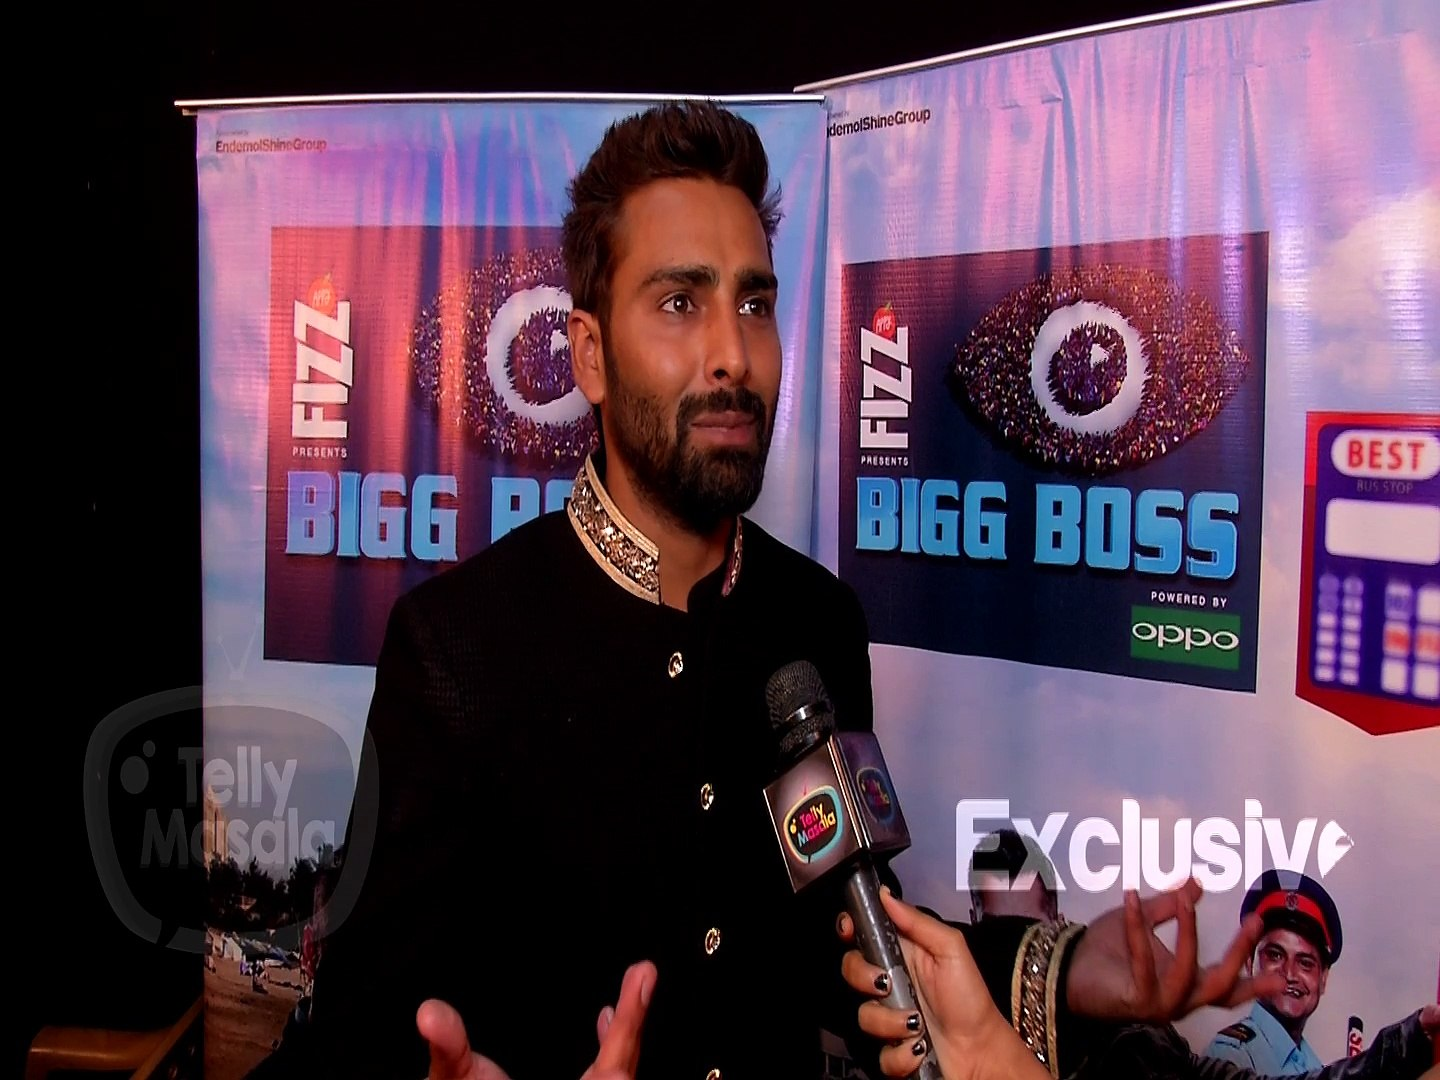 Bigg Boss 10 WINNER | Manveer Gurjar | Exclusive Interview